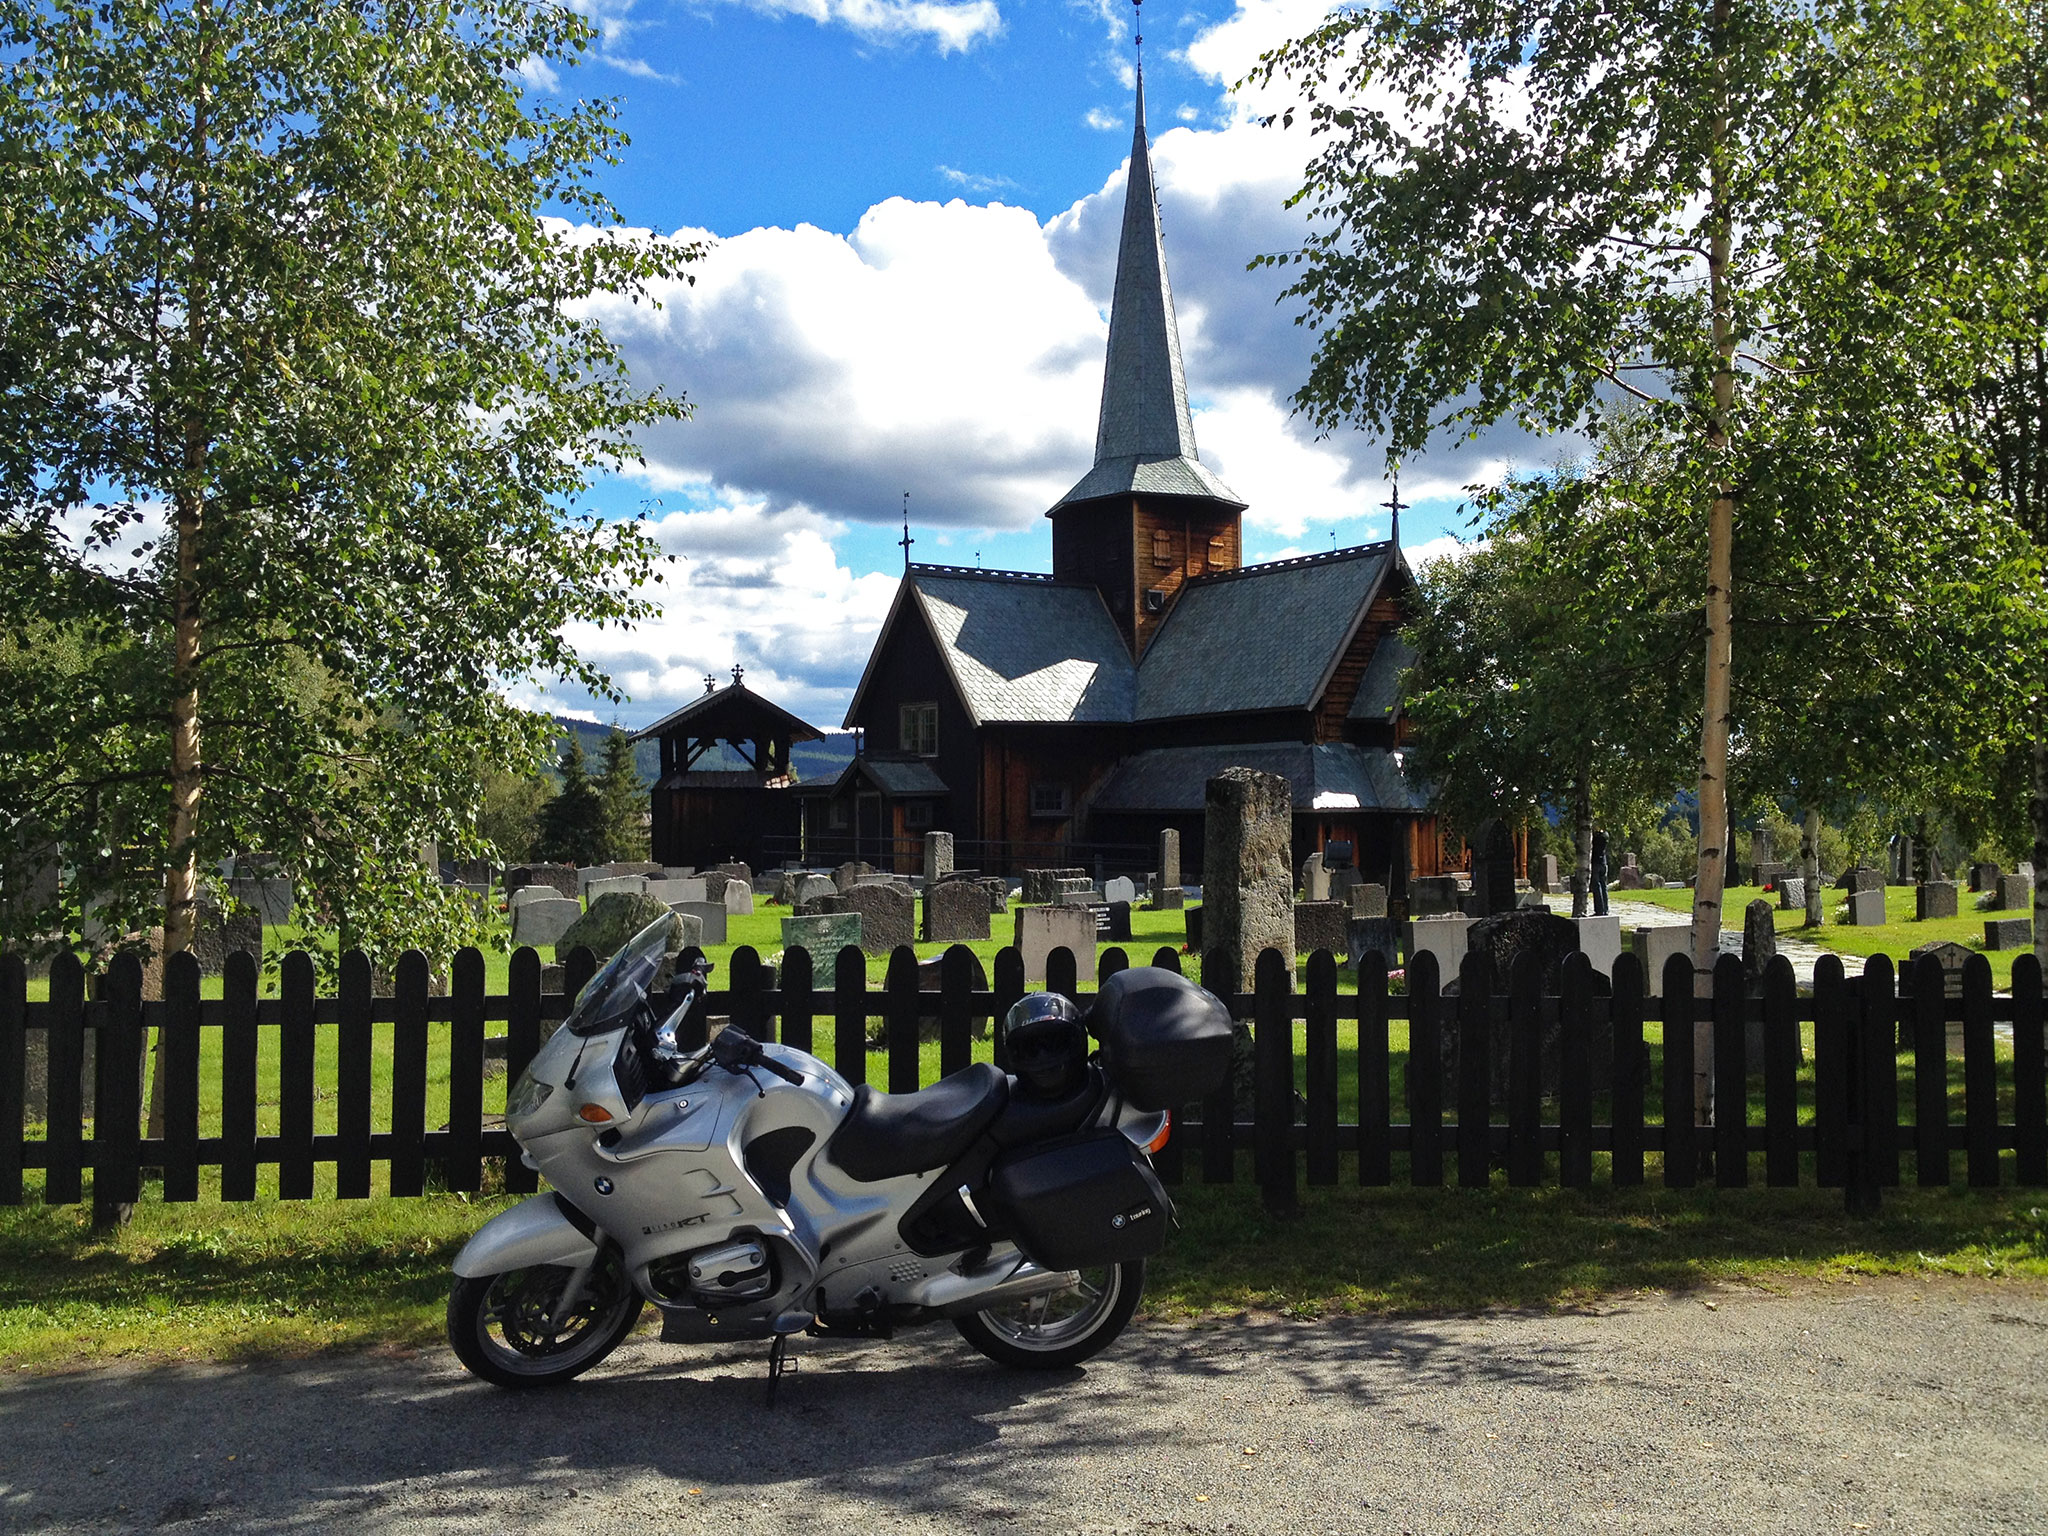 Late August trip, here parked in front of Hedalen Stave Church